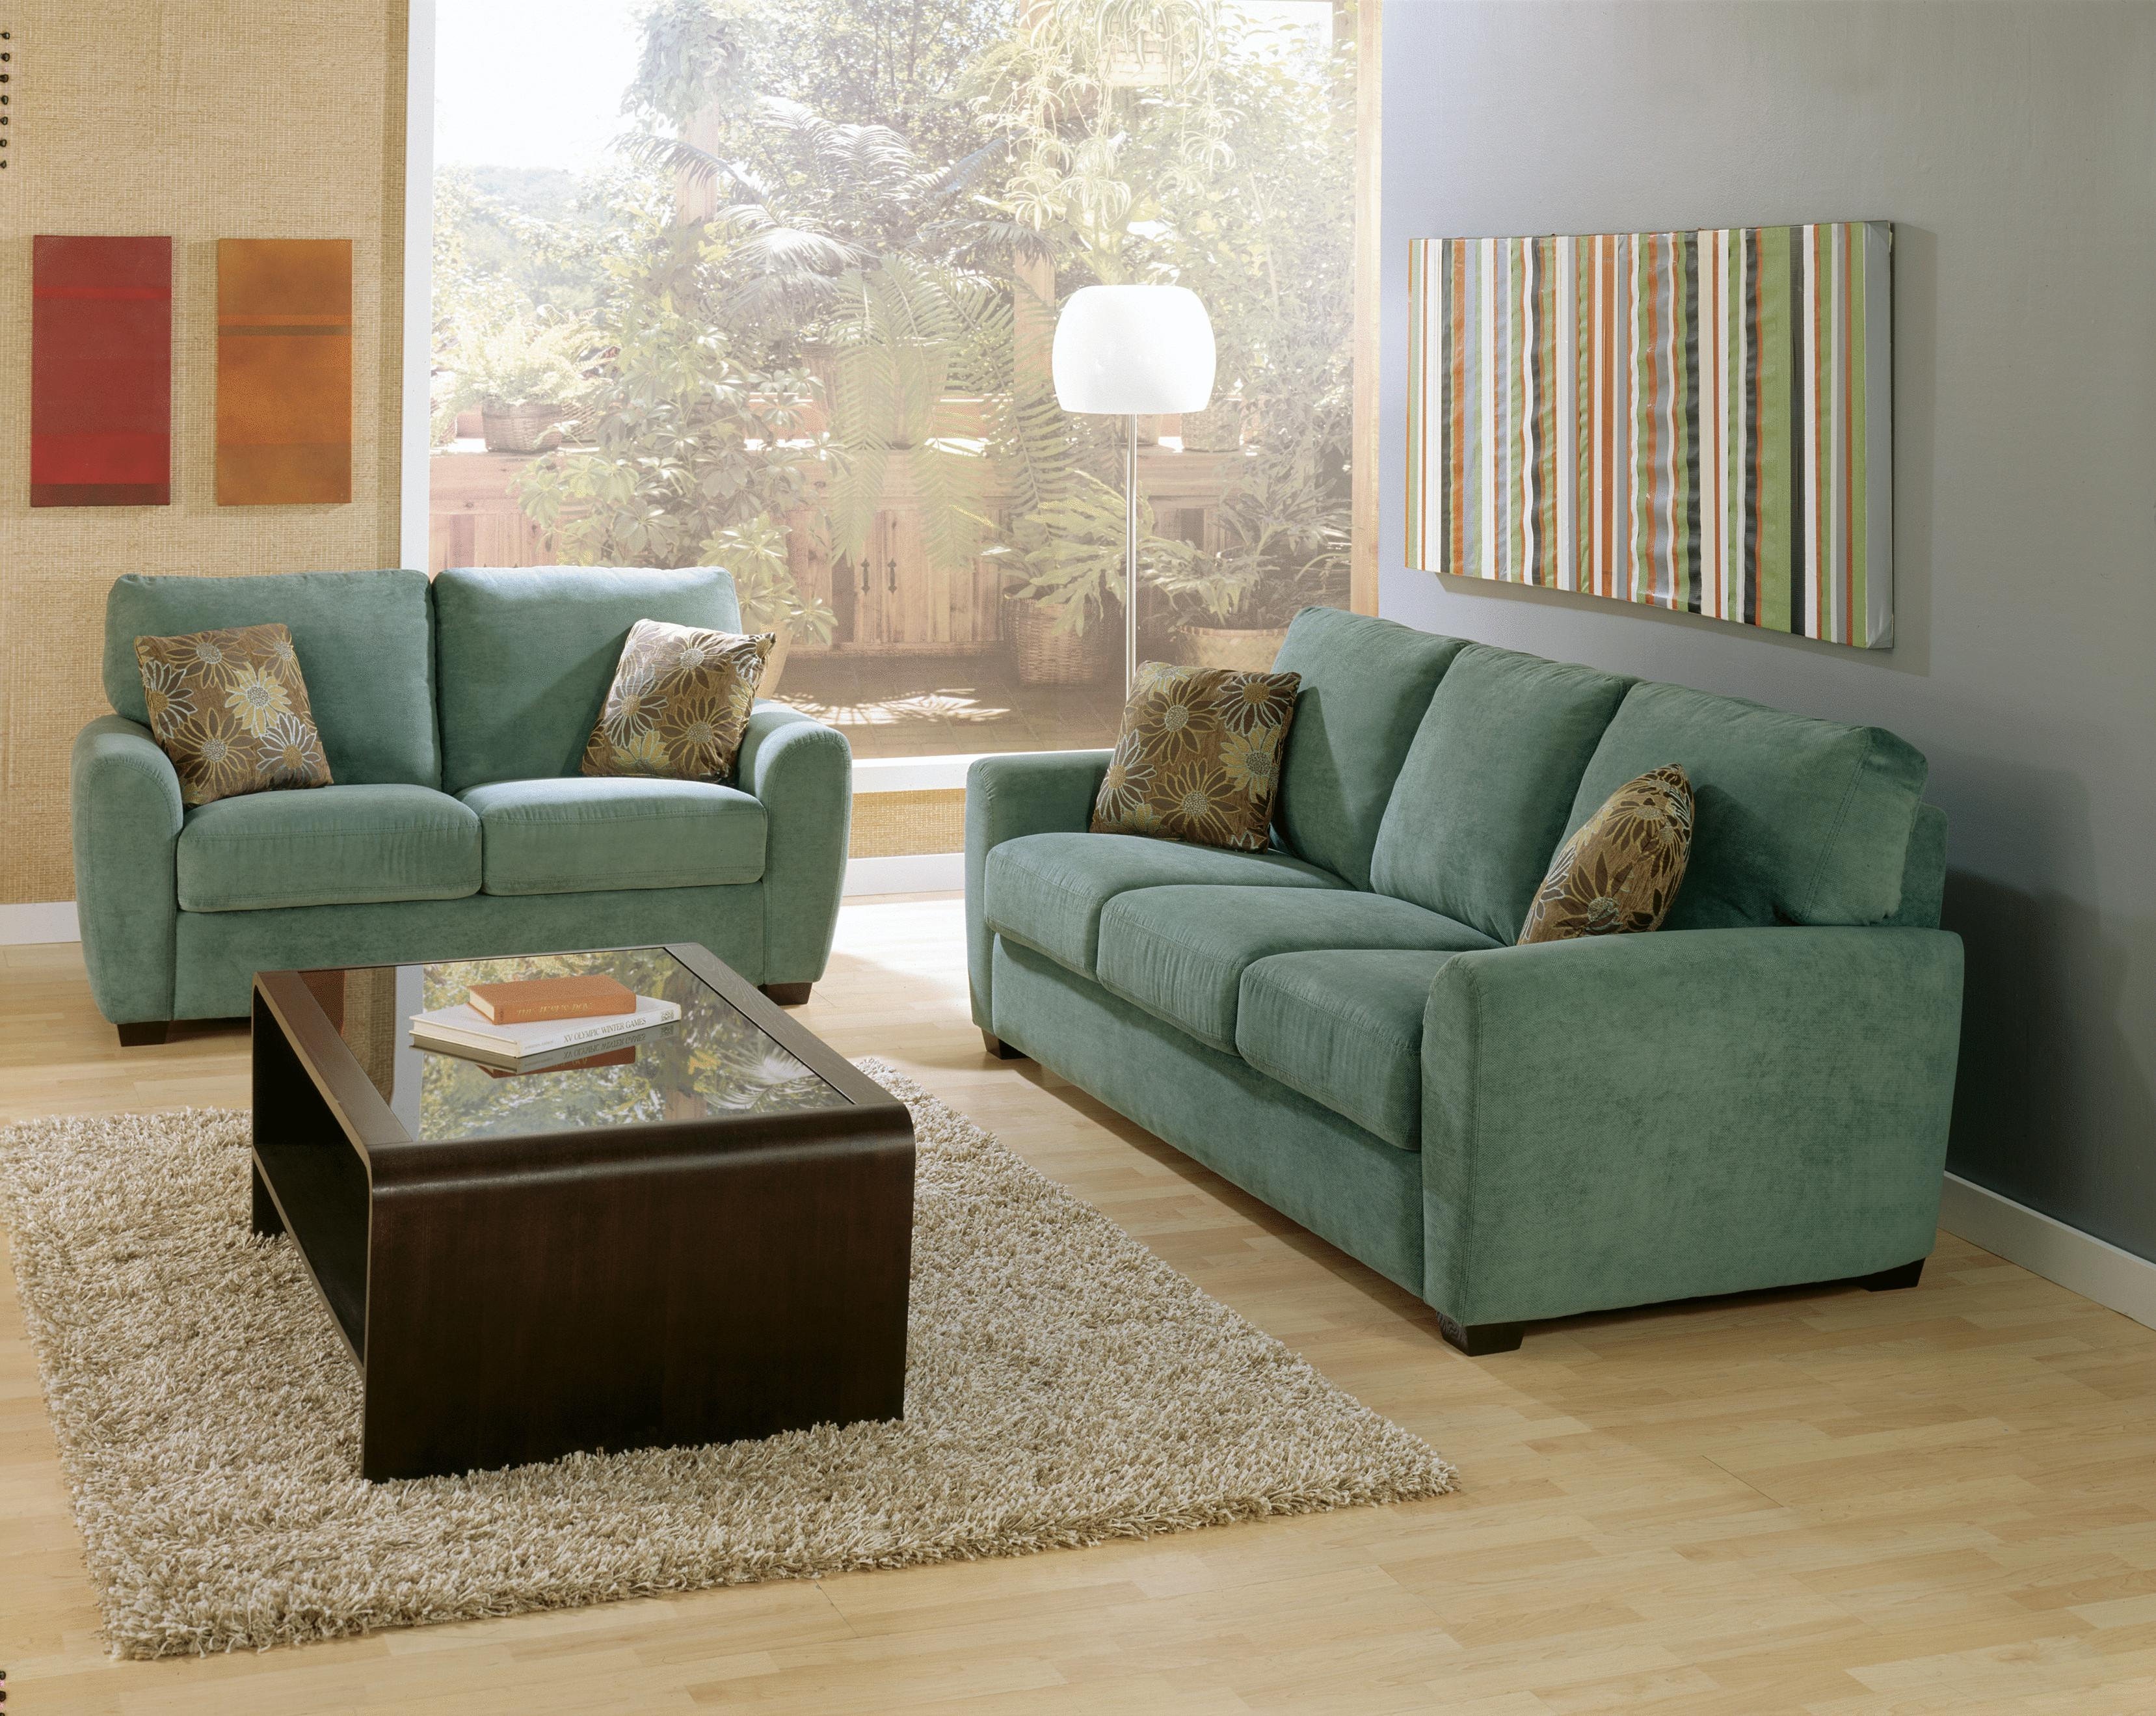 Palliser Connecticut Contemporary Loveseat With Rounded